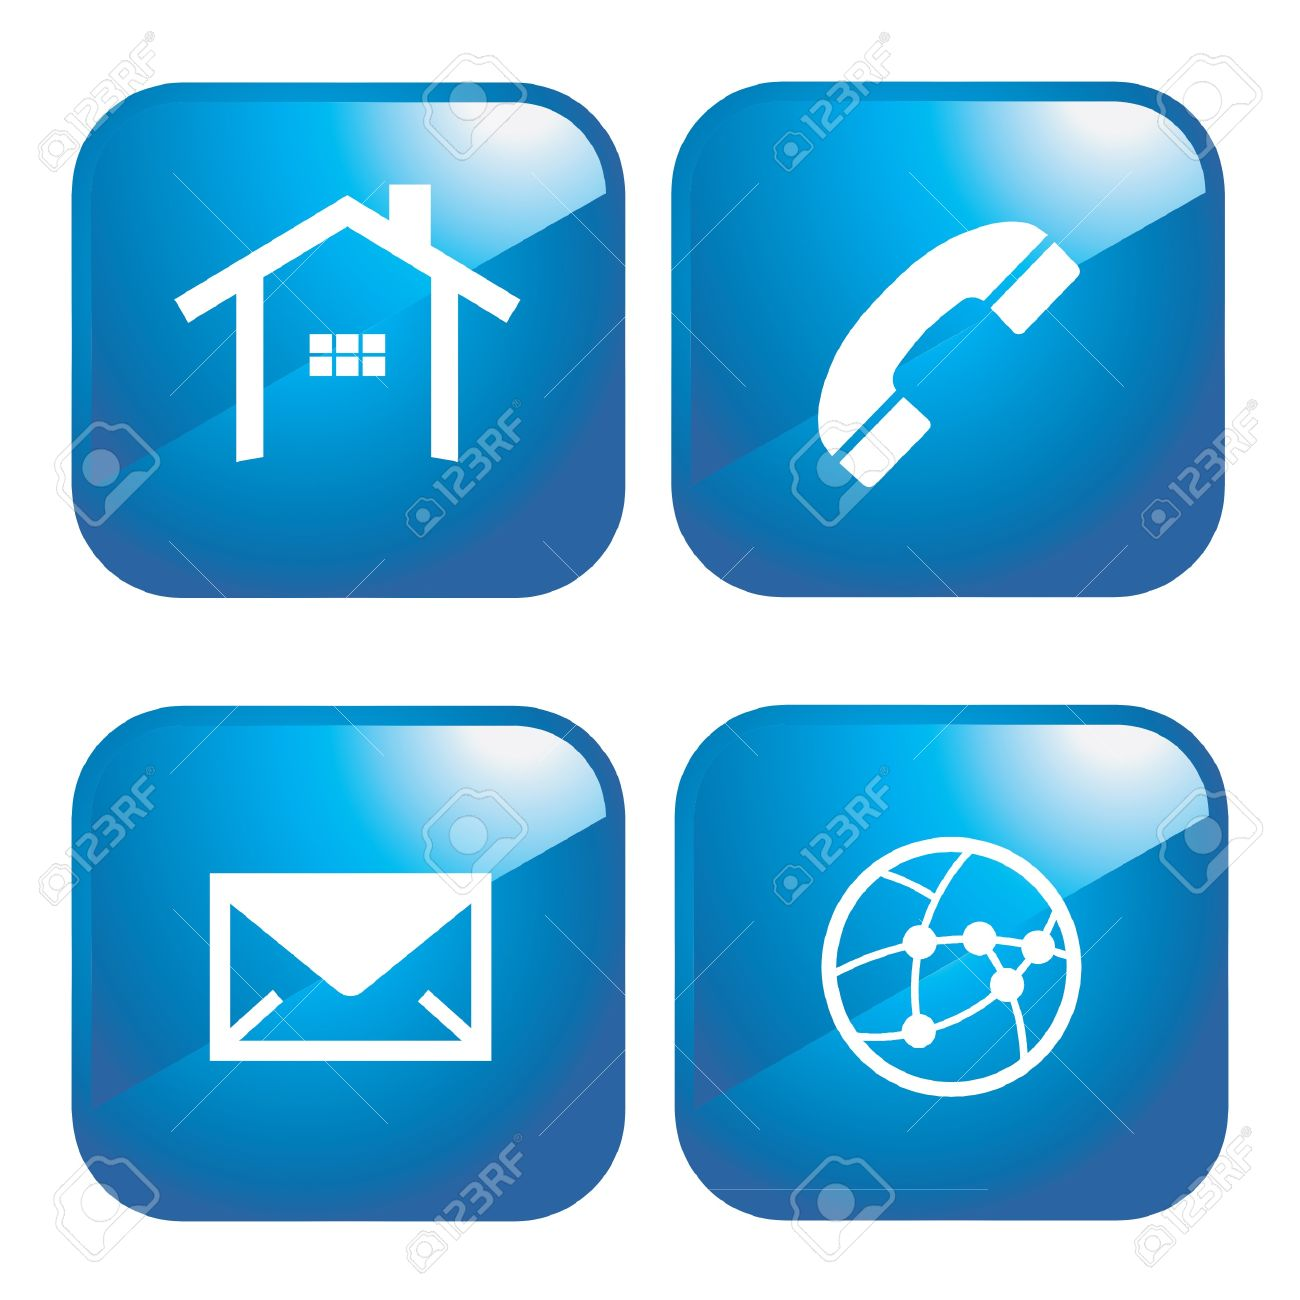 Internet Web 2.0 Icons Royalty Free Cliparts, Vectors, And Stock.